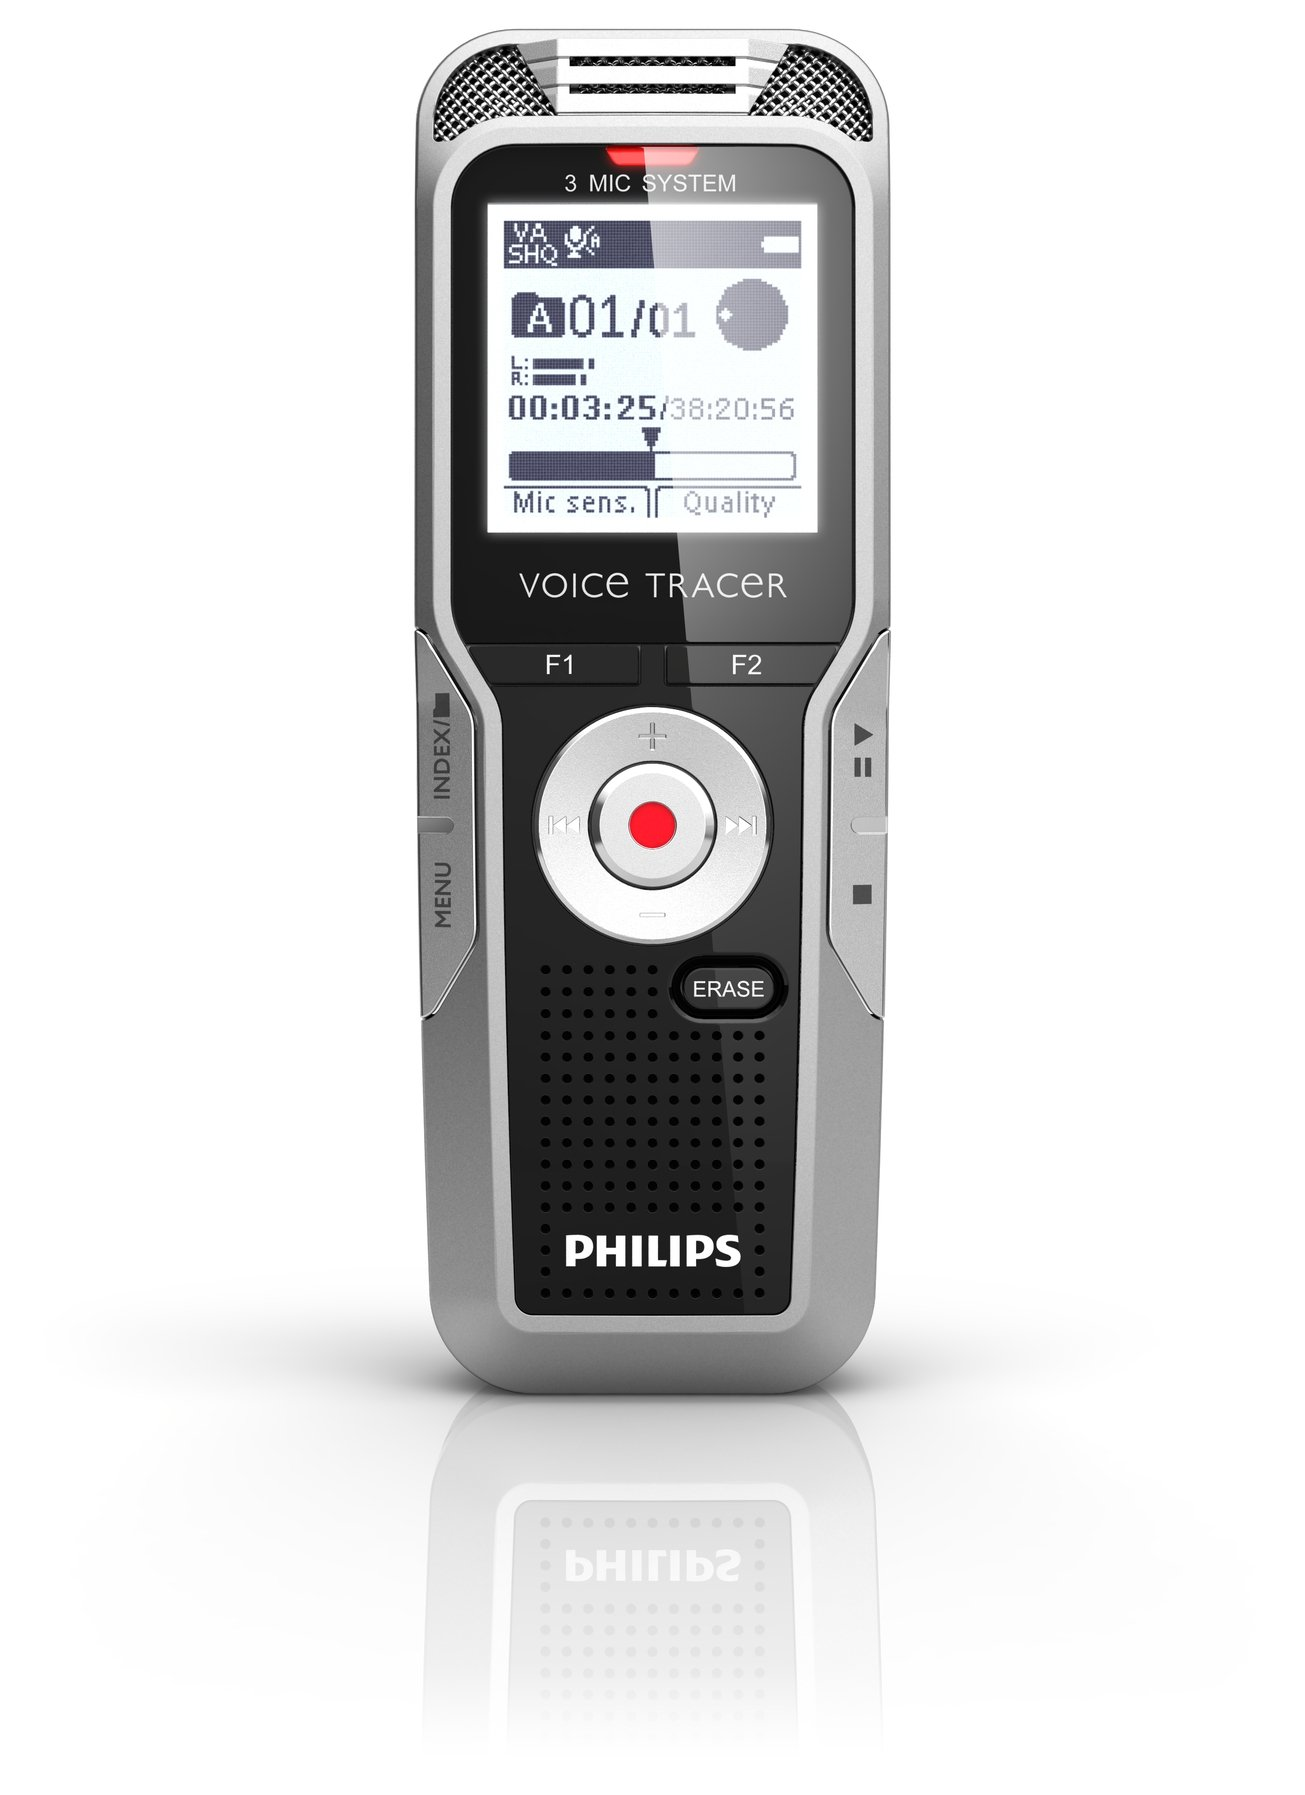 Philips DVT5500/00 4 GB Digital Voice Tracer with 3 Built-In Microphones and Remote Voice Recorder